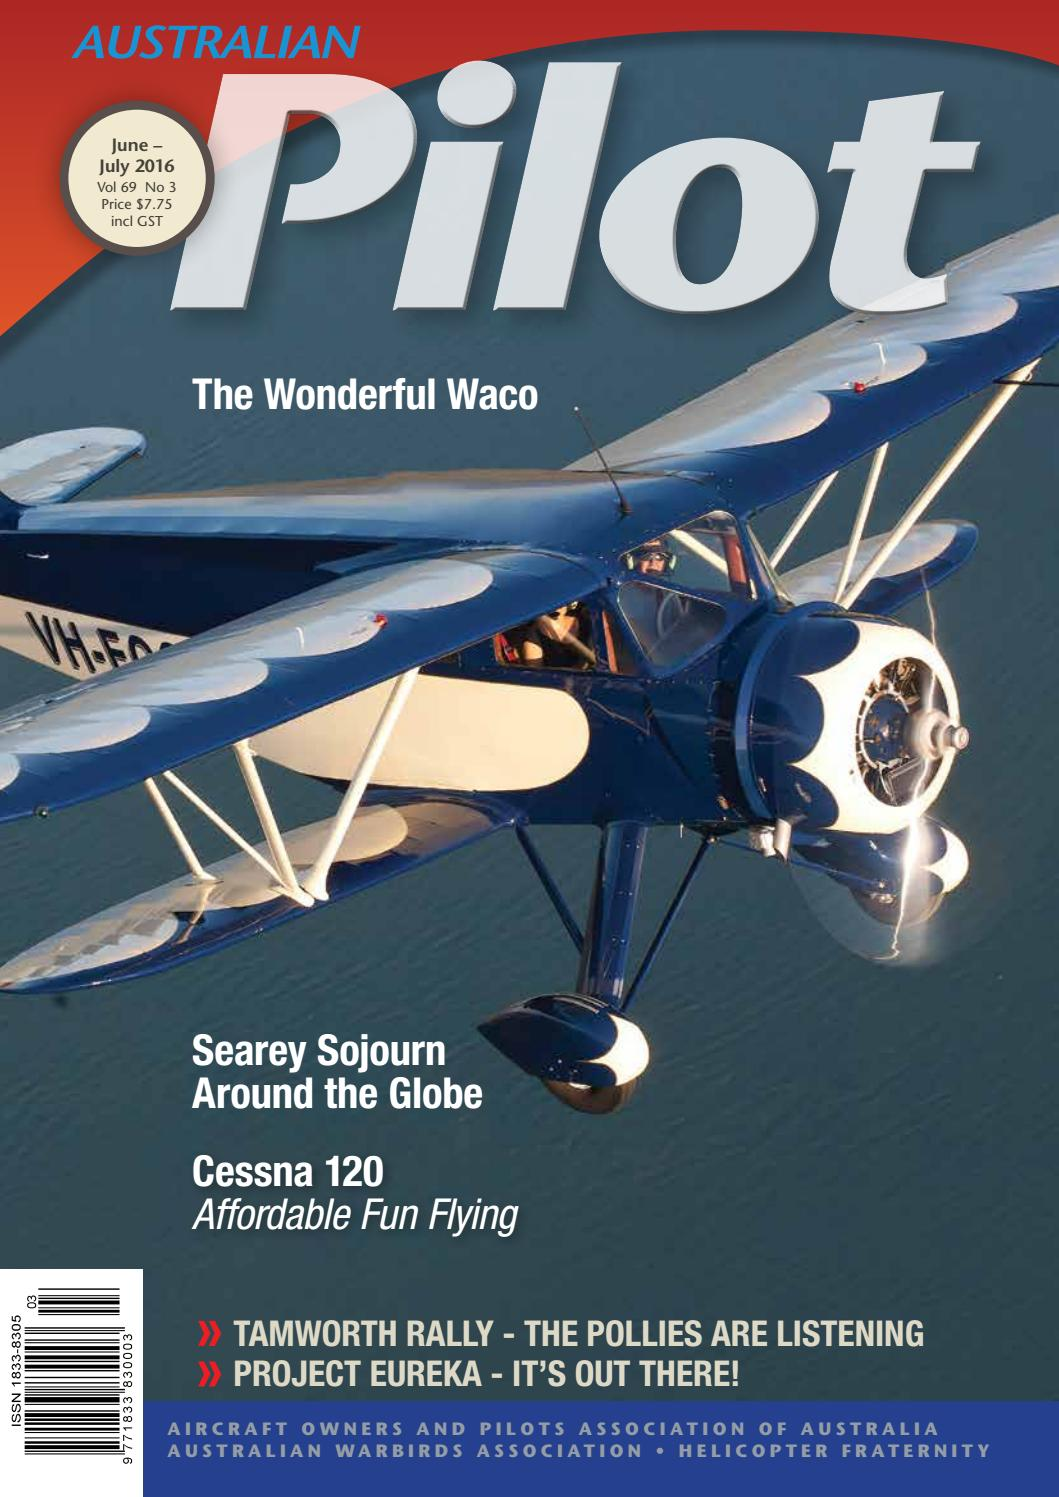 eaa airventure today monday by eaa experimental eaa airventure today monday 28 2014 by eaa experimental aircraft association issuu